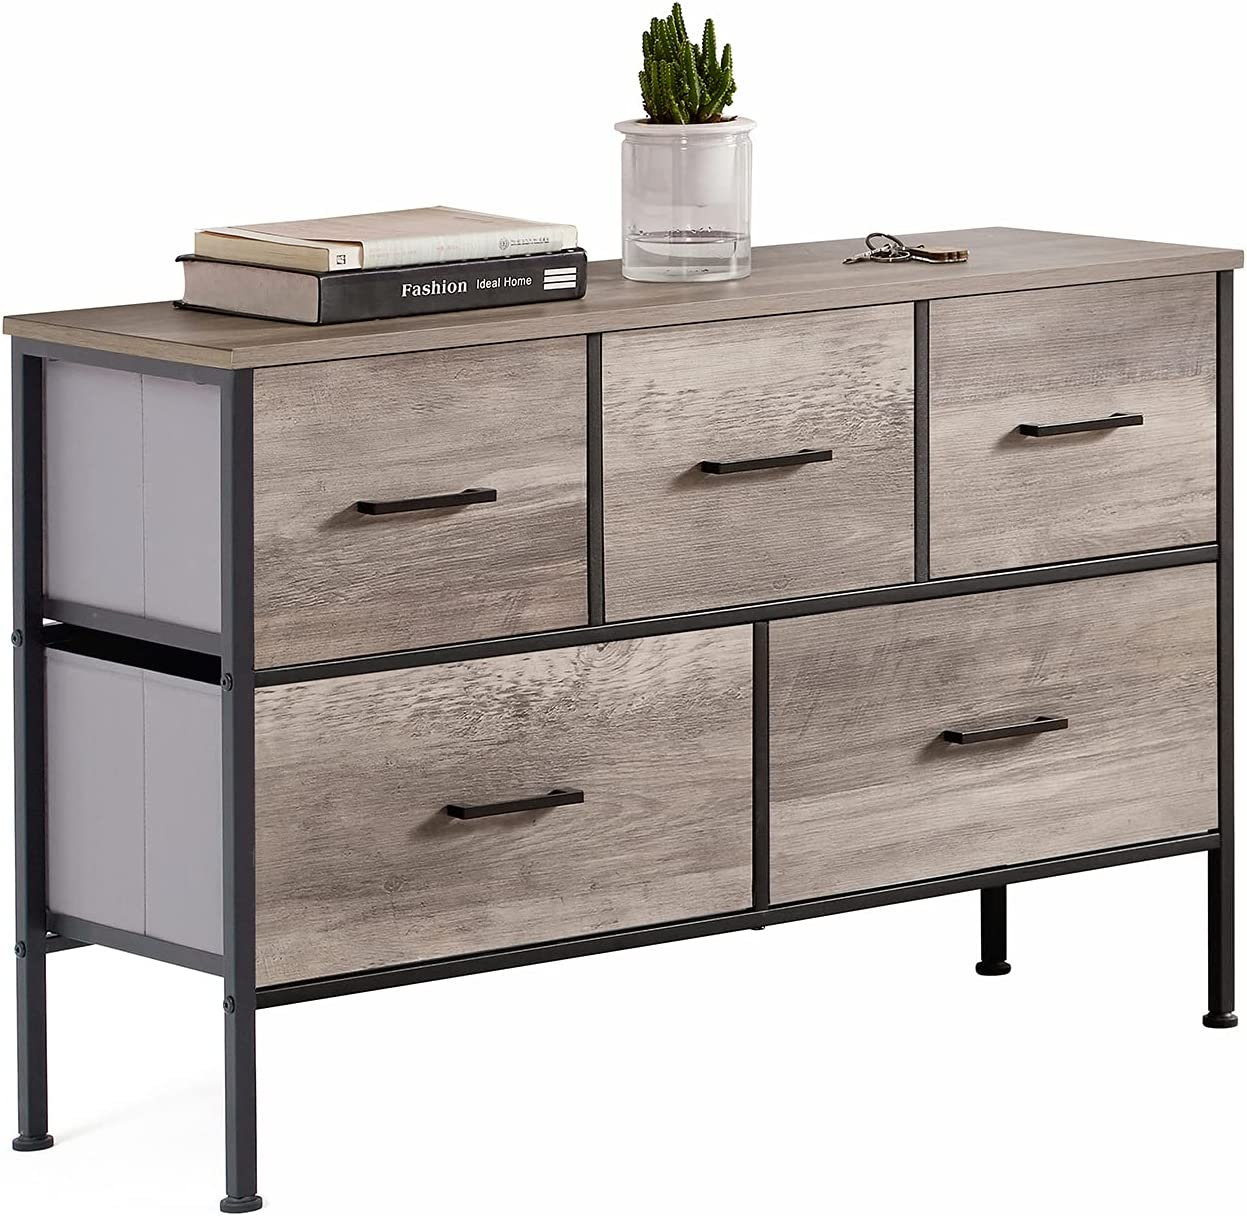 5 Drawer Dresser Long Wide Cheap Chest Nightstand Drawers of Wood with Dallas Mall